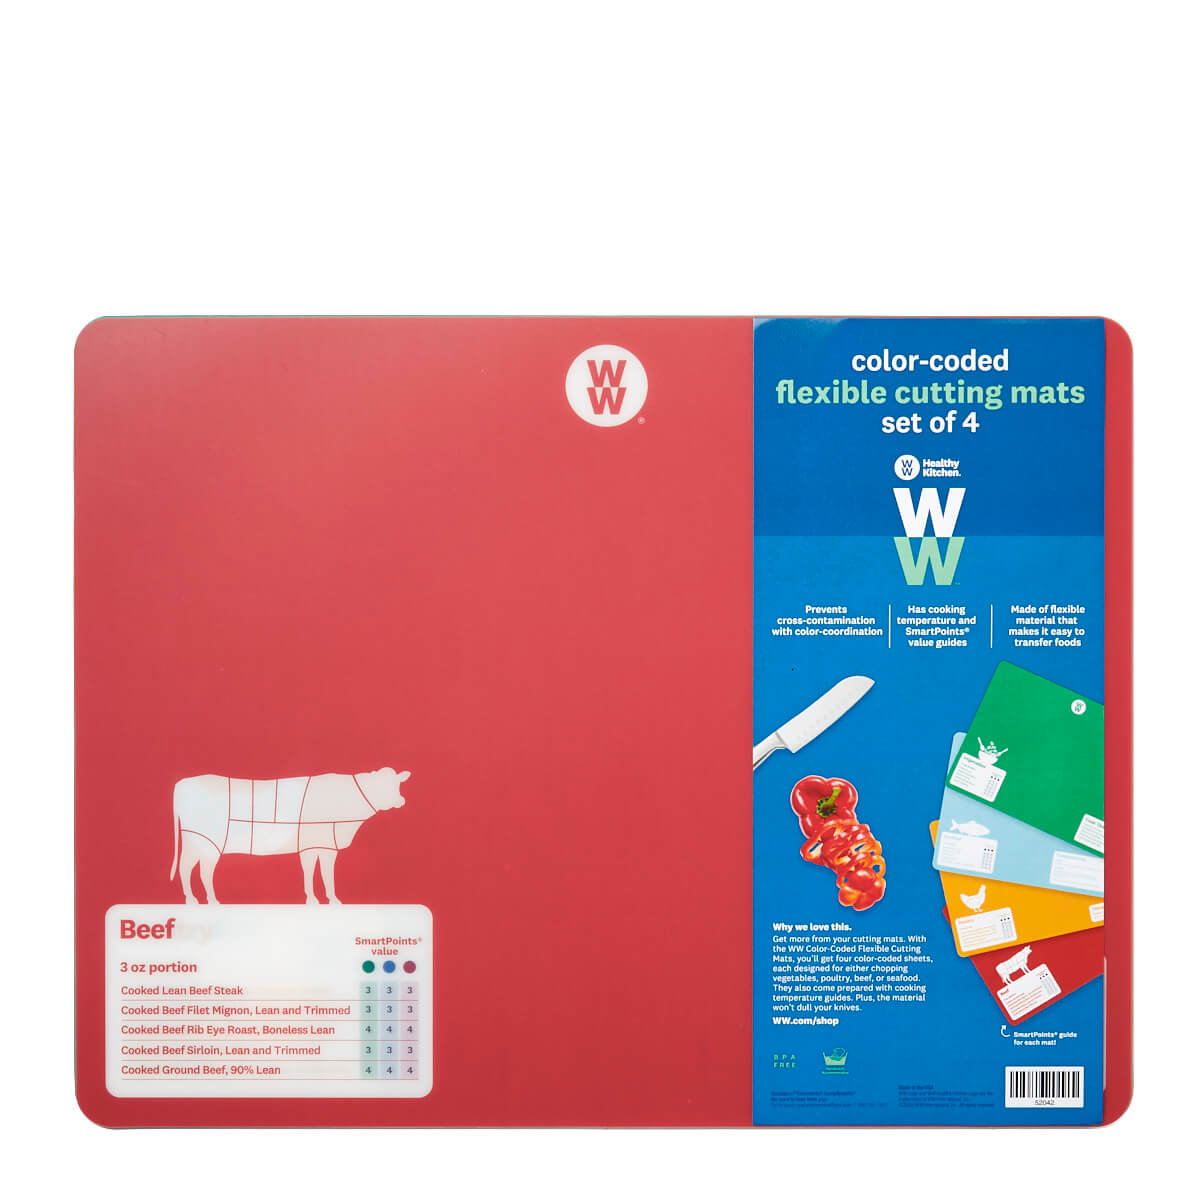 WW Color-Coded Flexible Cutting Mats, 4 cutting mats for different types of food, front of red cutting mat used for beef